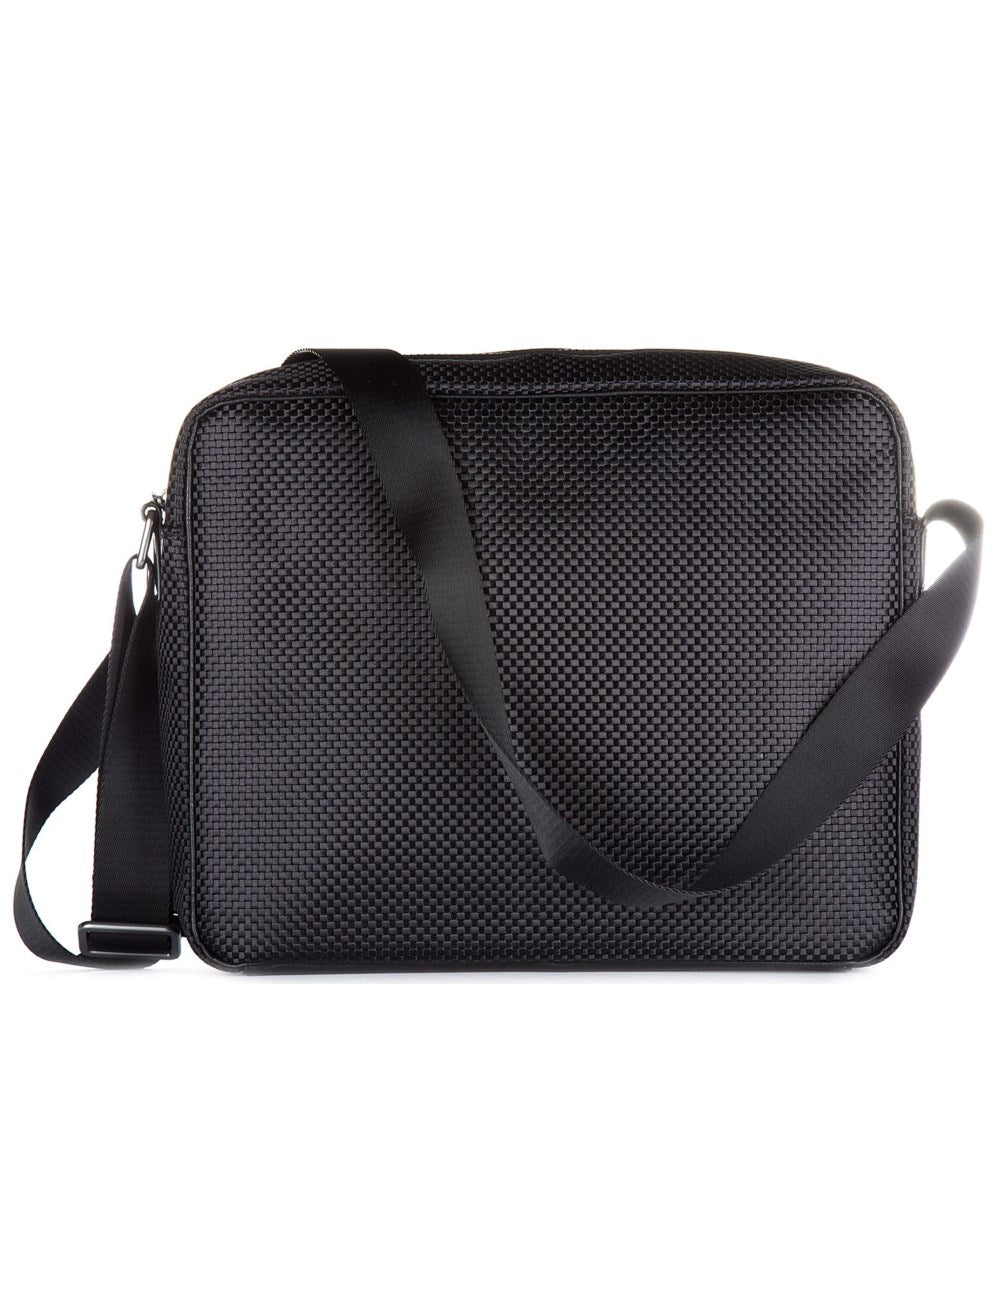 Armani Jeans Messenger Bag